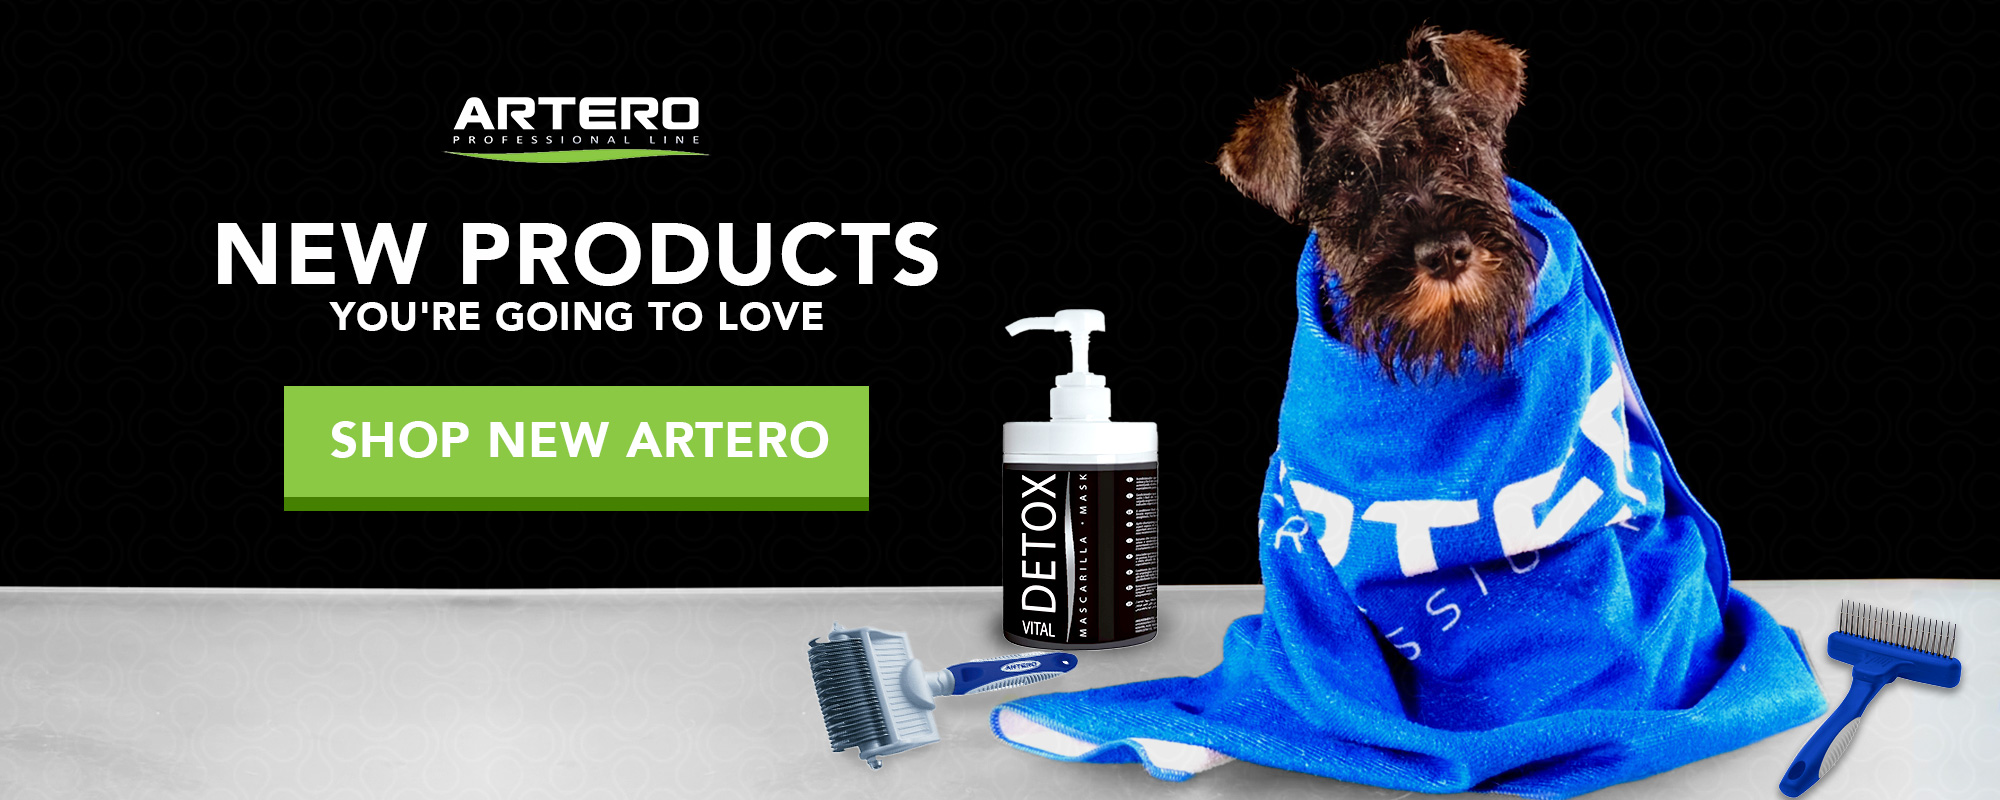 New Products You're Going To Love